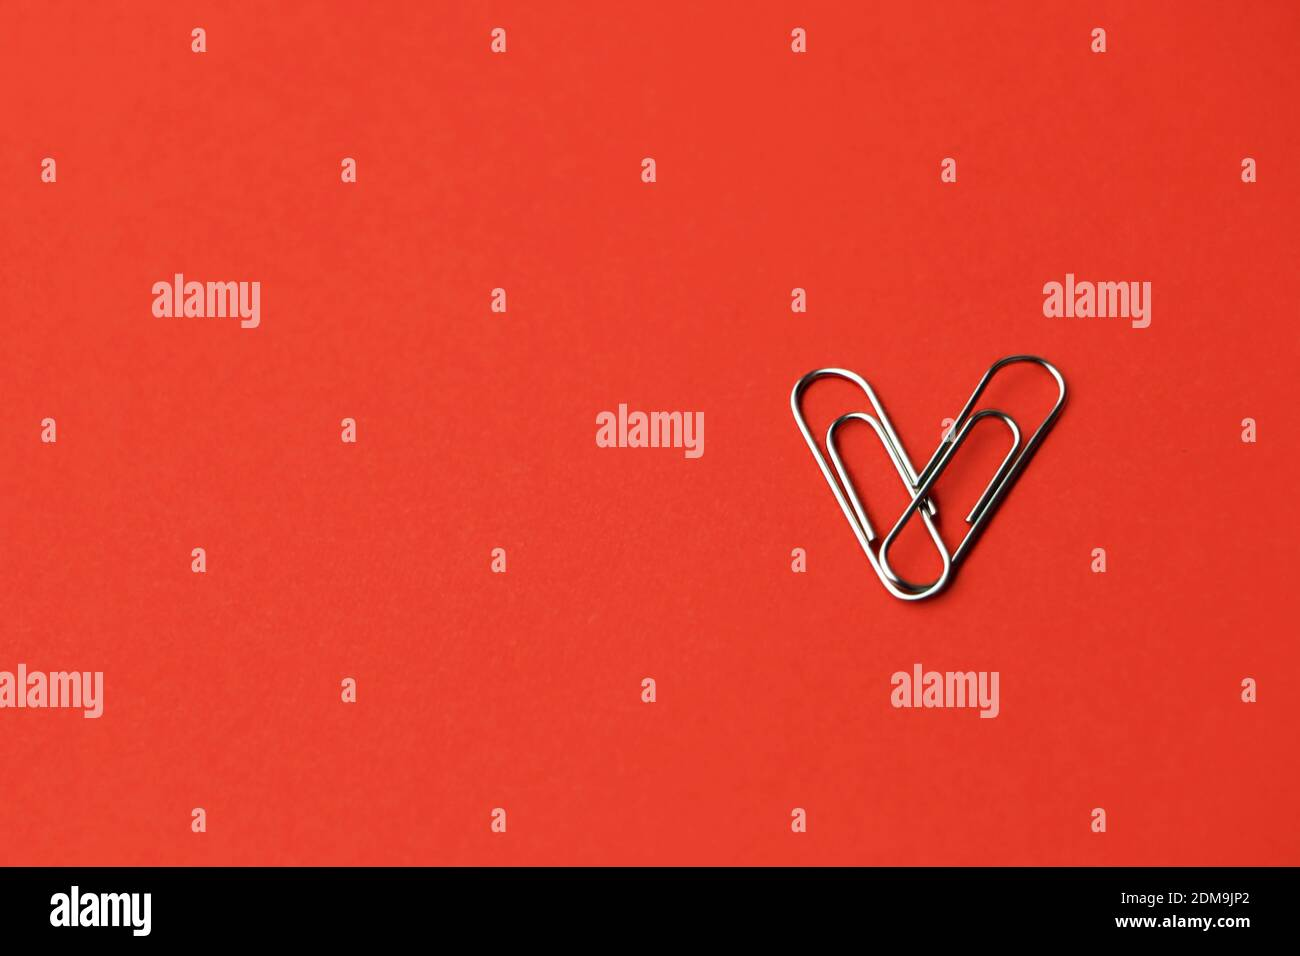 Heart shape paper clips on a red background. Valentine's day concept. High quality photo Banque D'Images